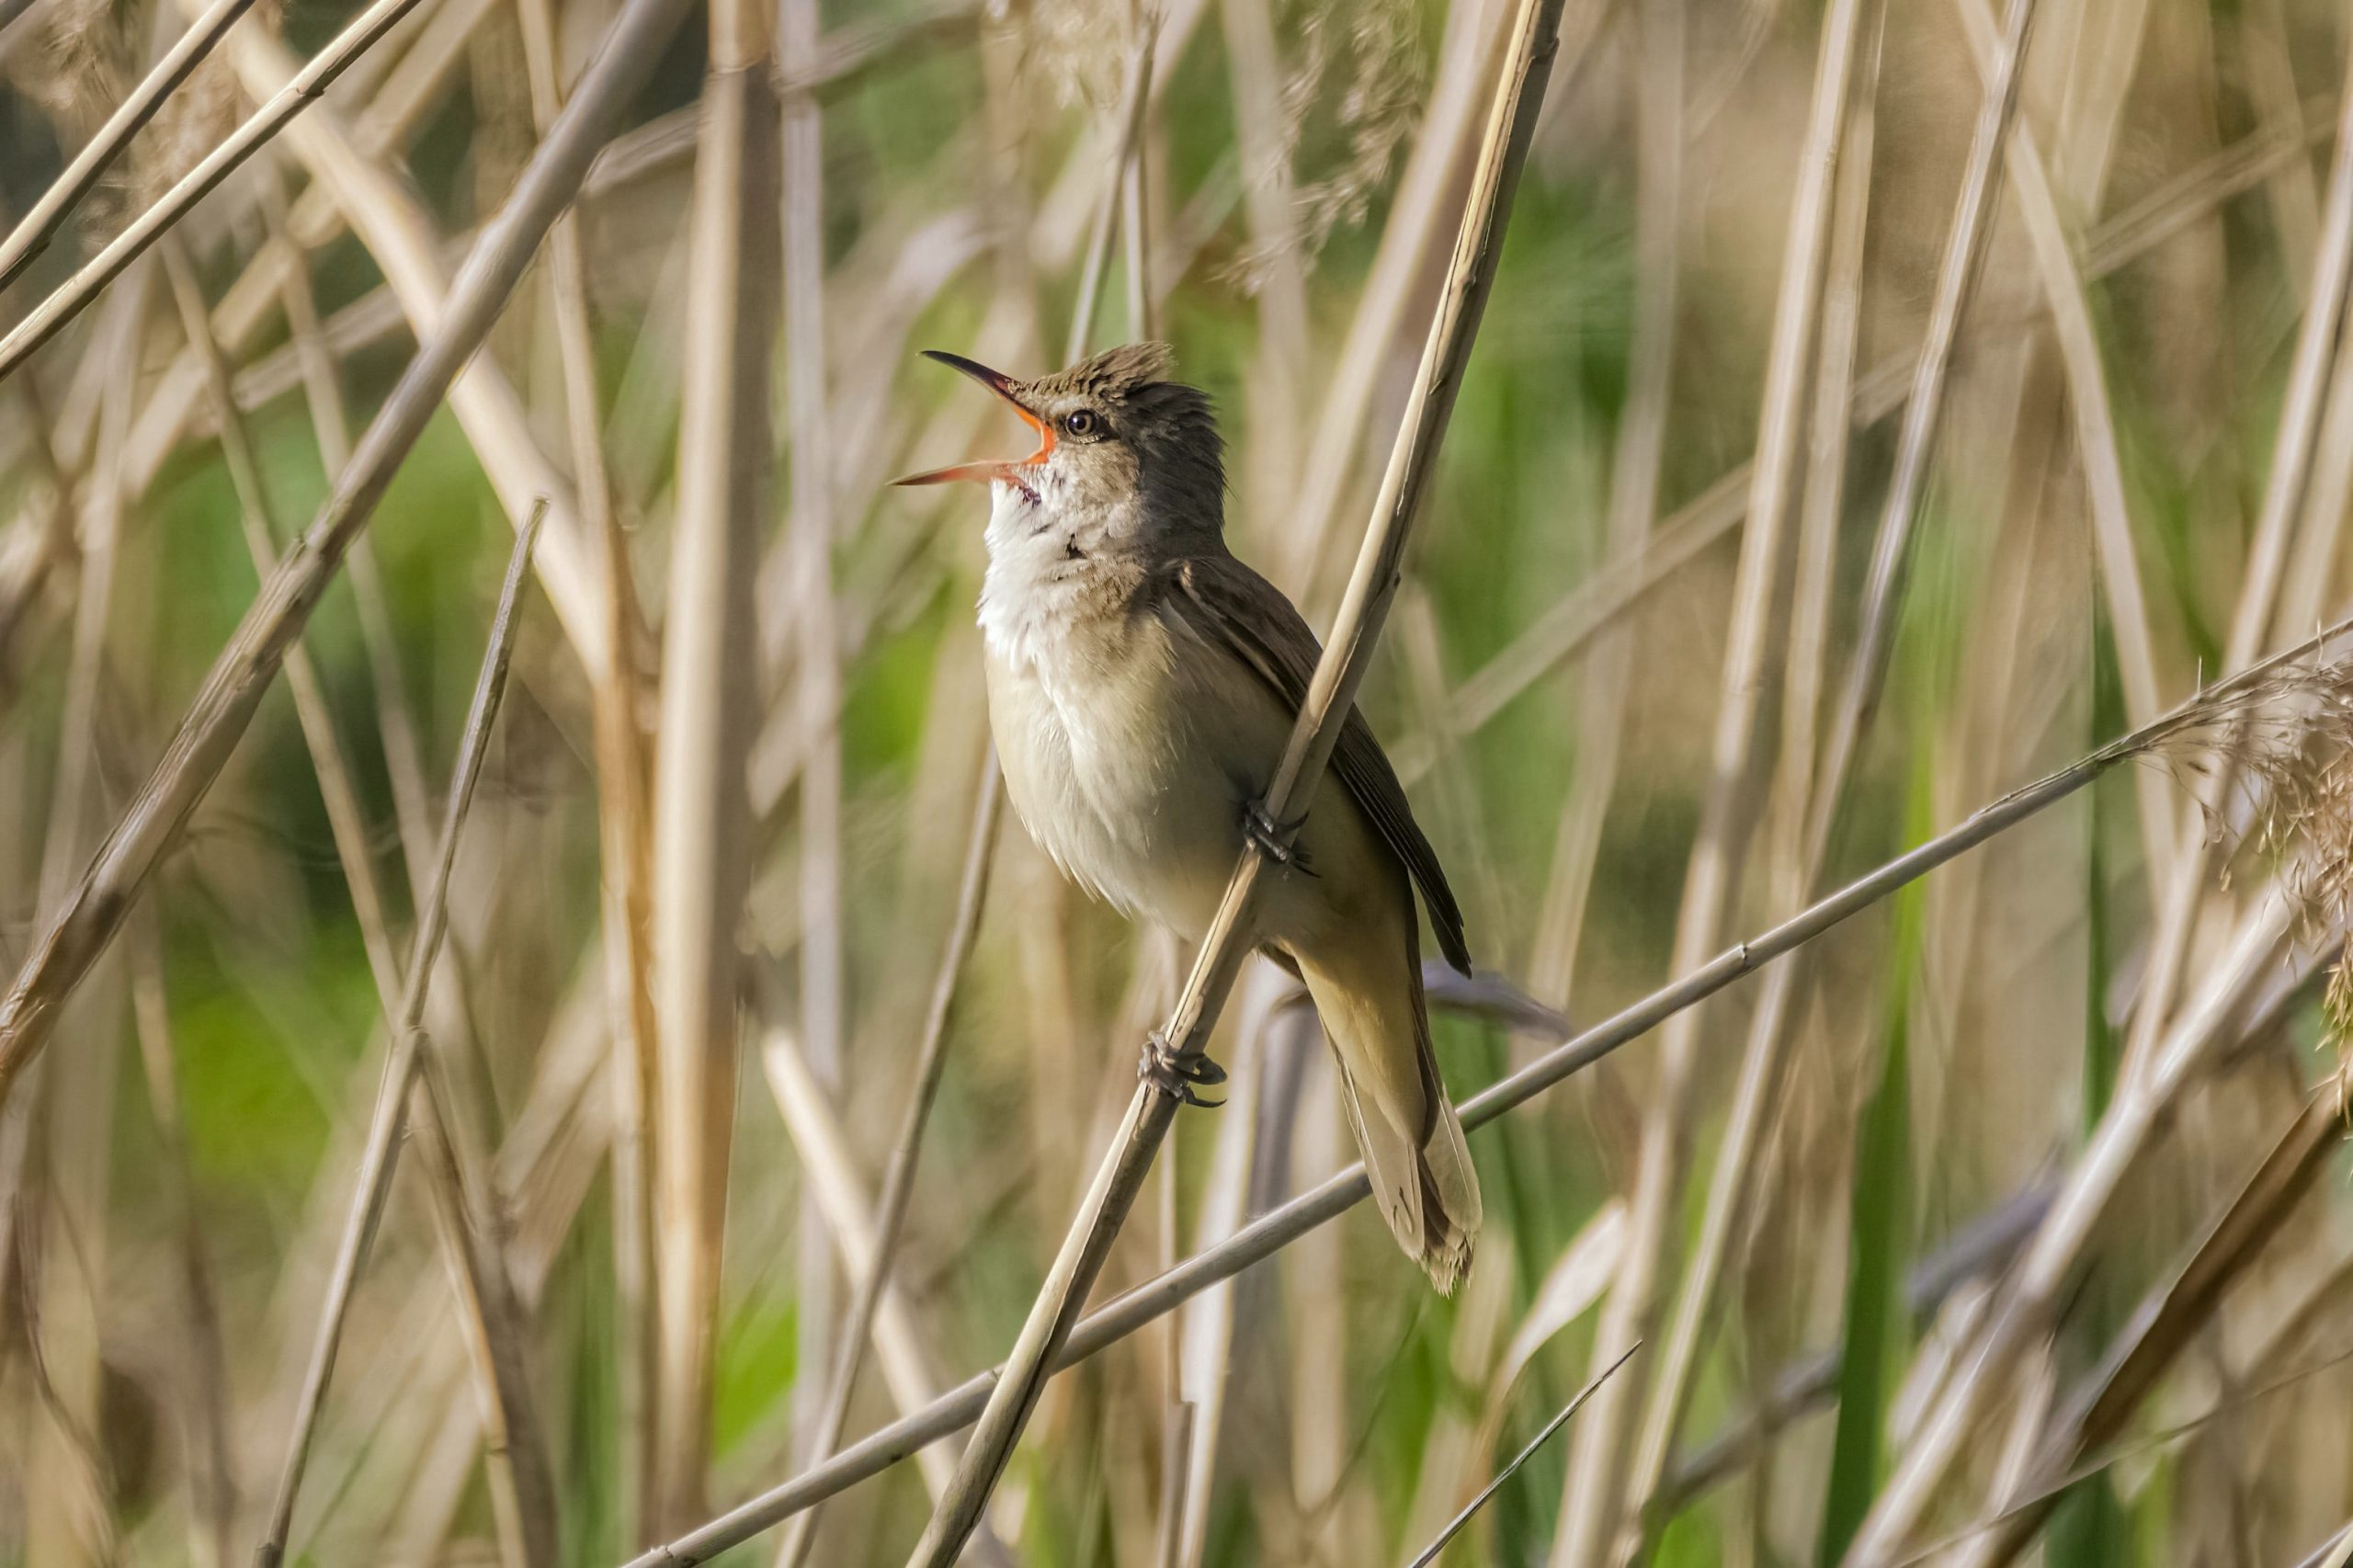 A bird sings in the reeds.